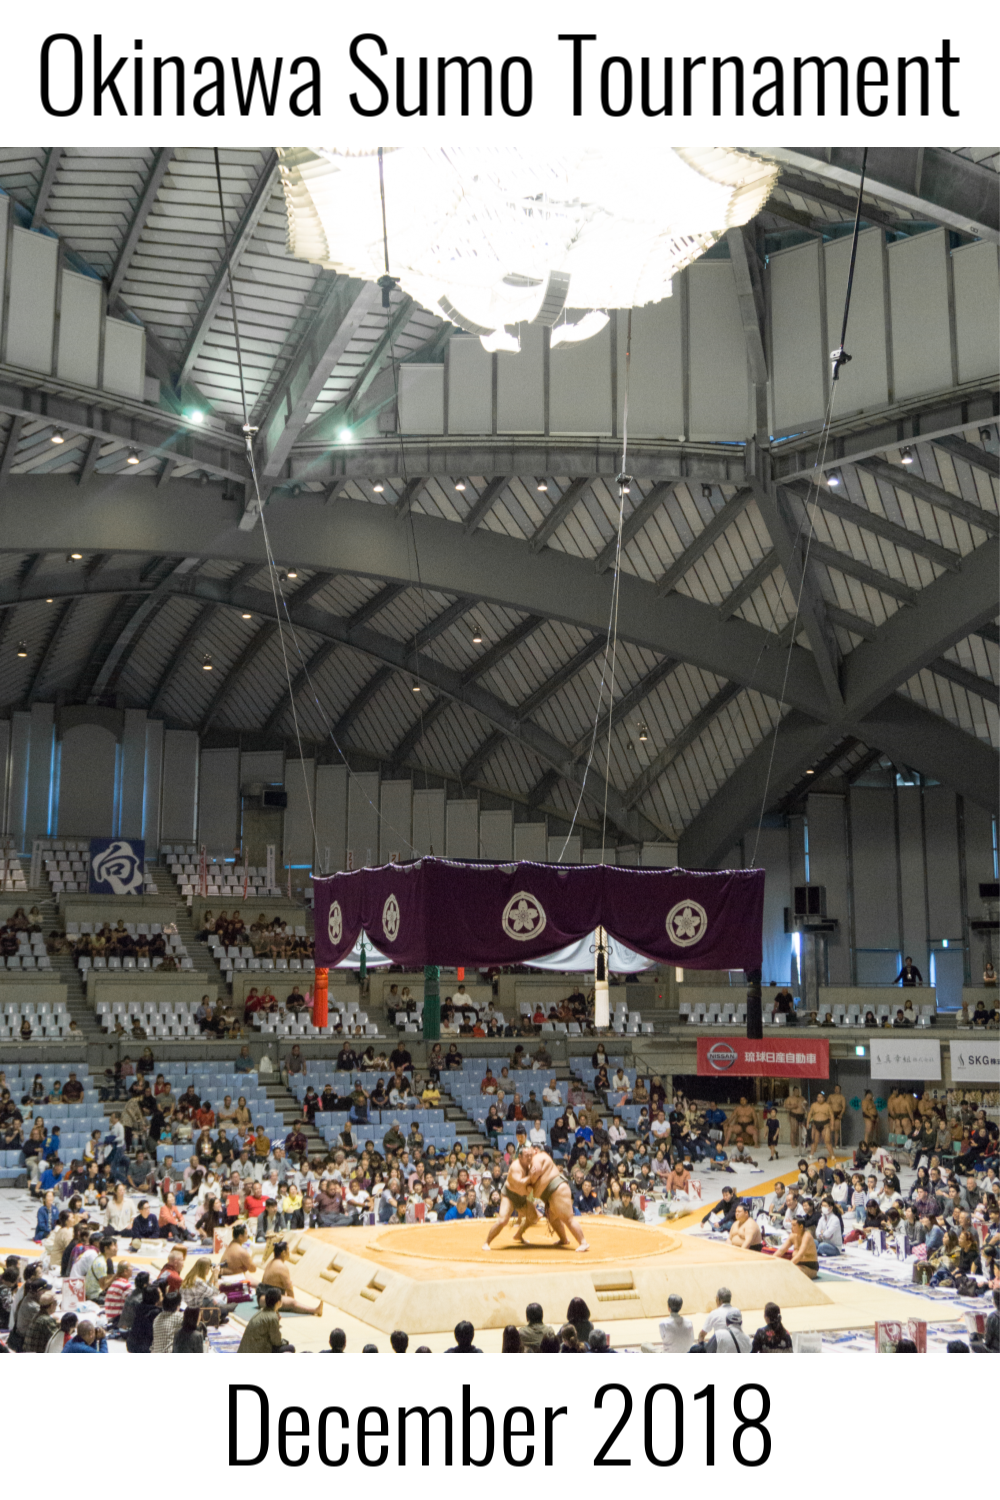 Okinawa Sumo Tournament